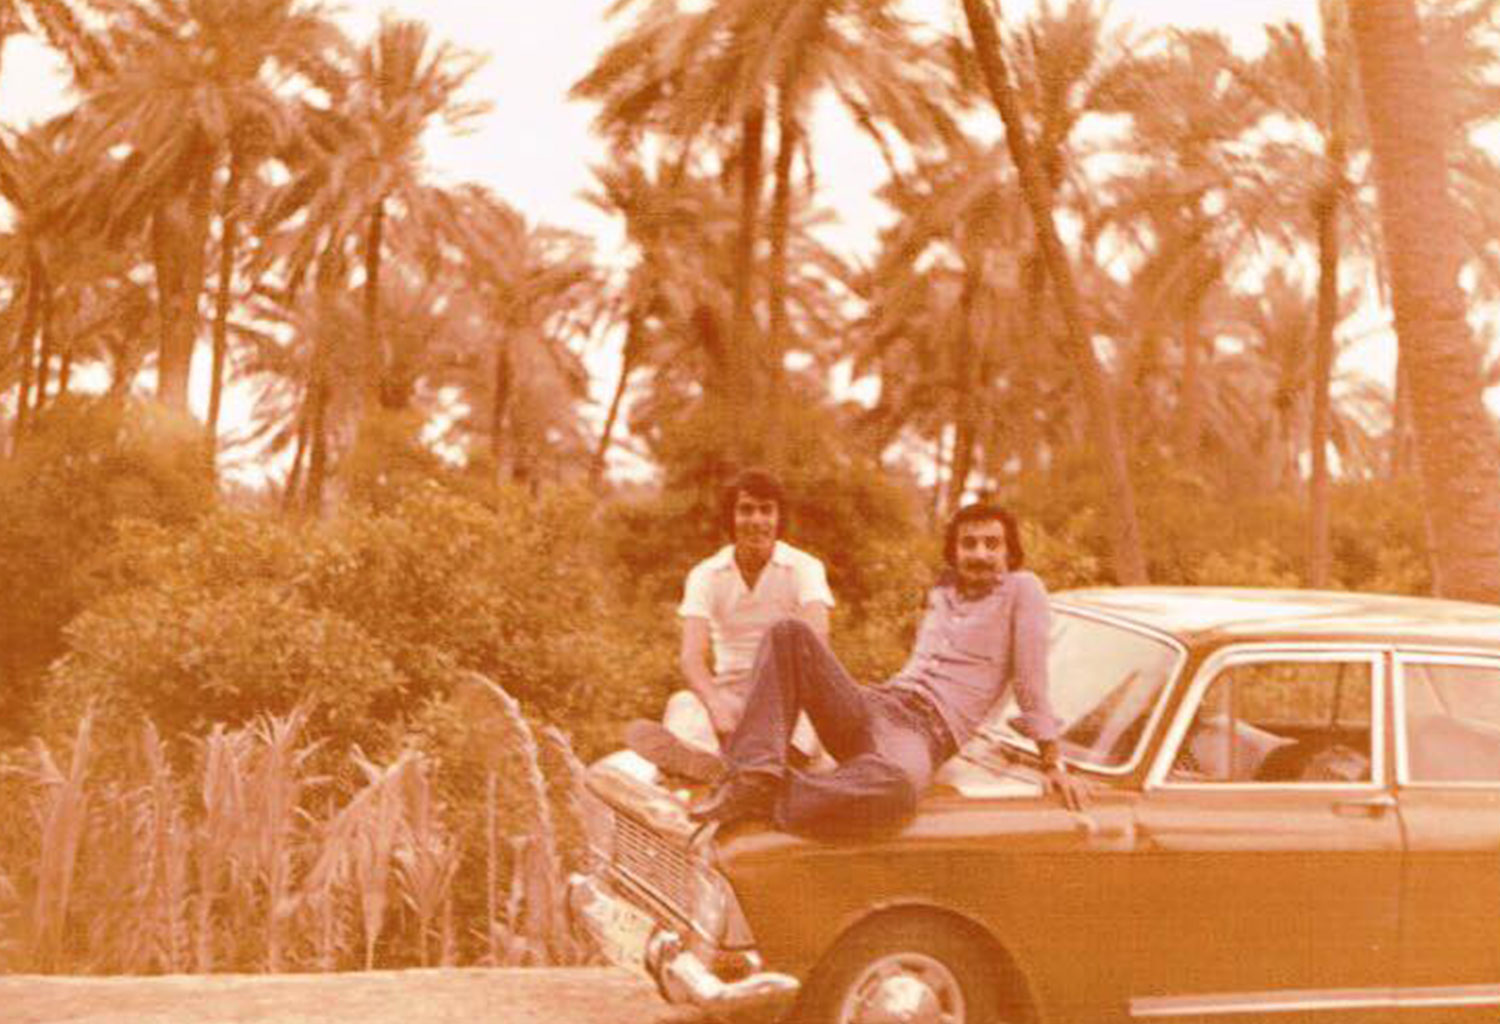 An image of two men sitting on the hood of a car with palm trees behind them in 1978 as submitted to the Iraq Photo Archive.